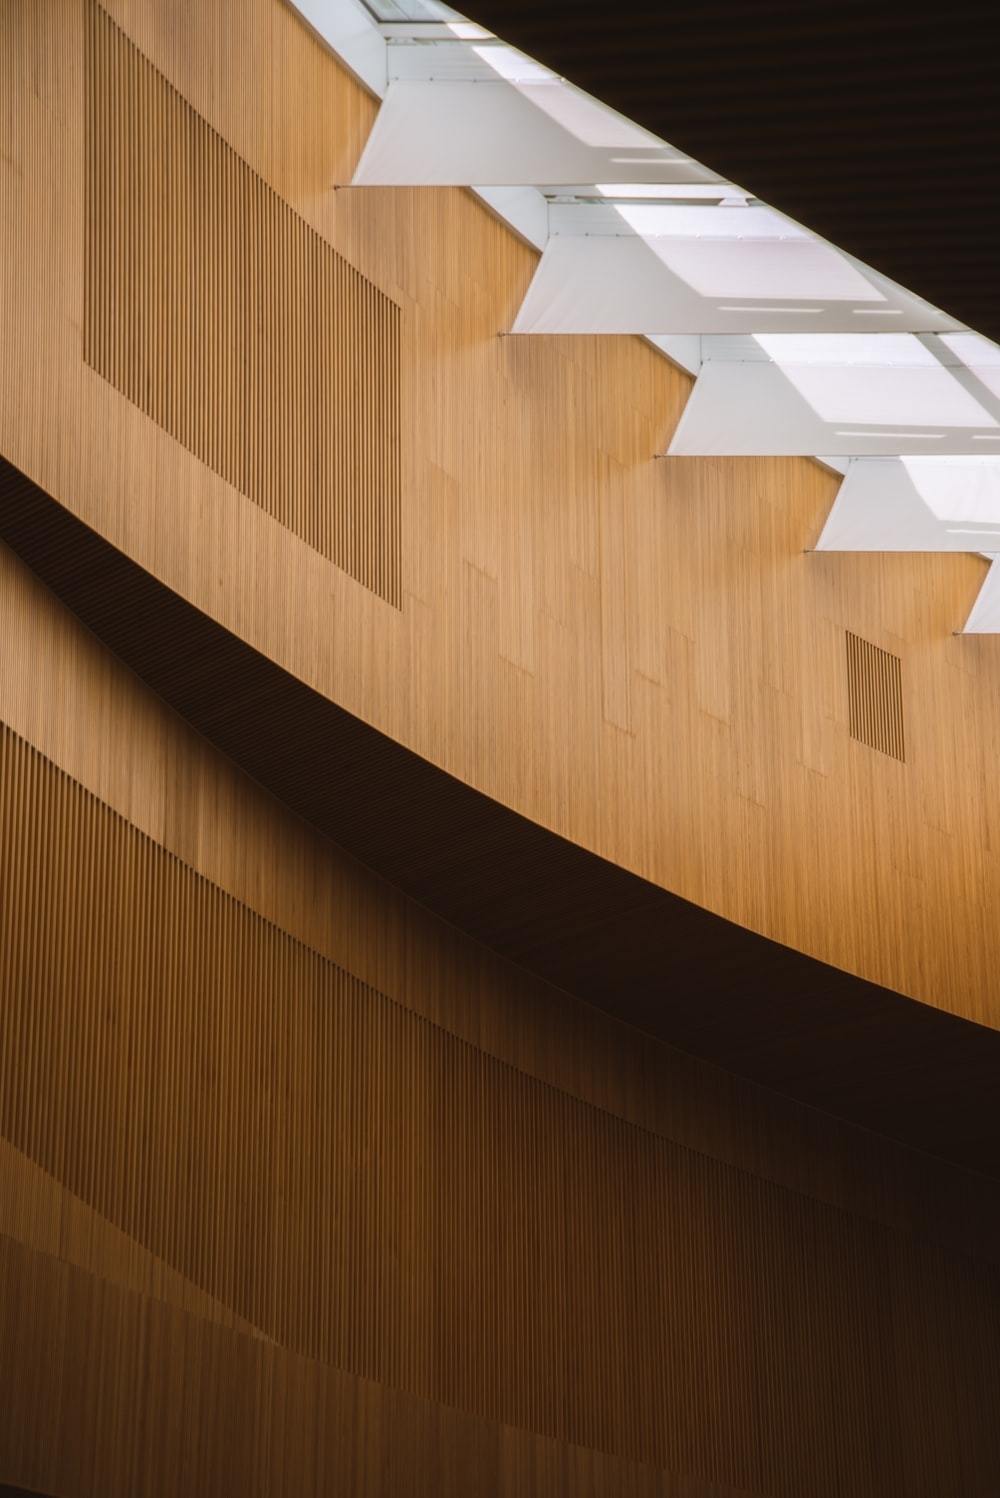 brown wooden wall with white wooden arrow